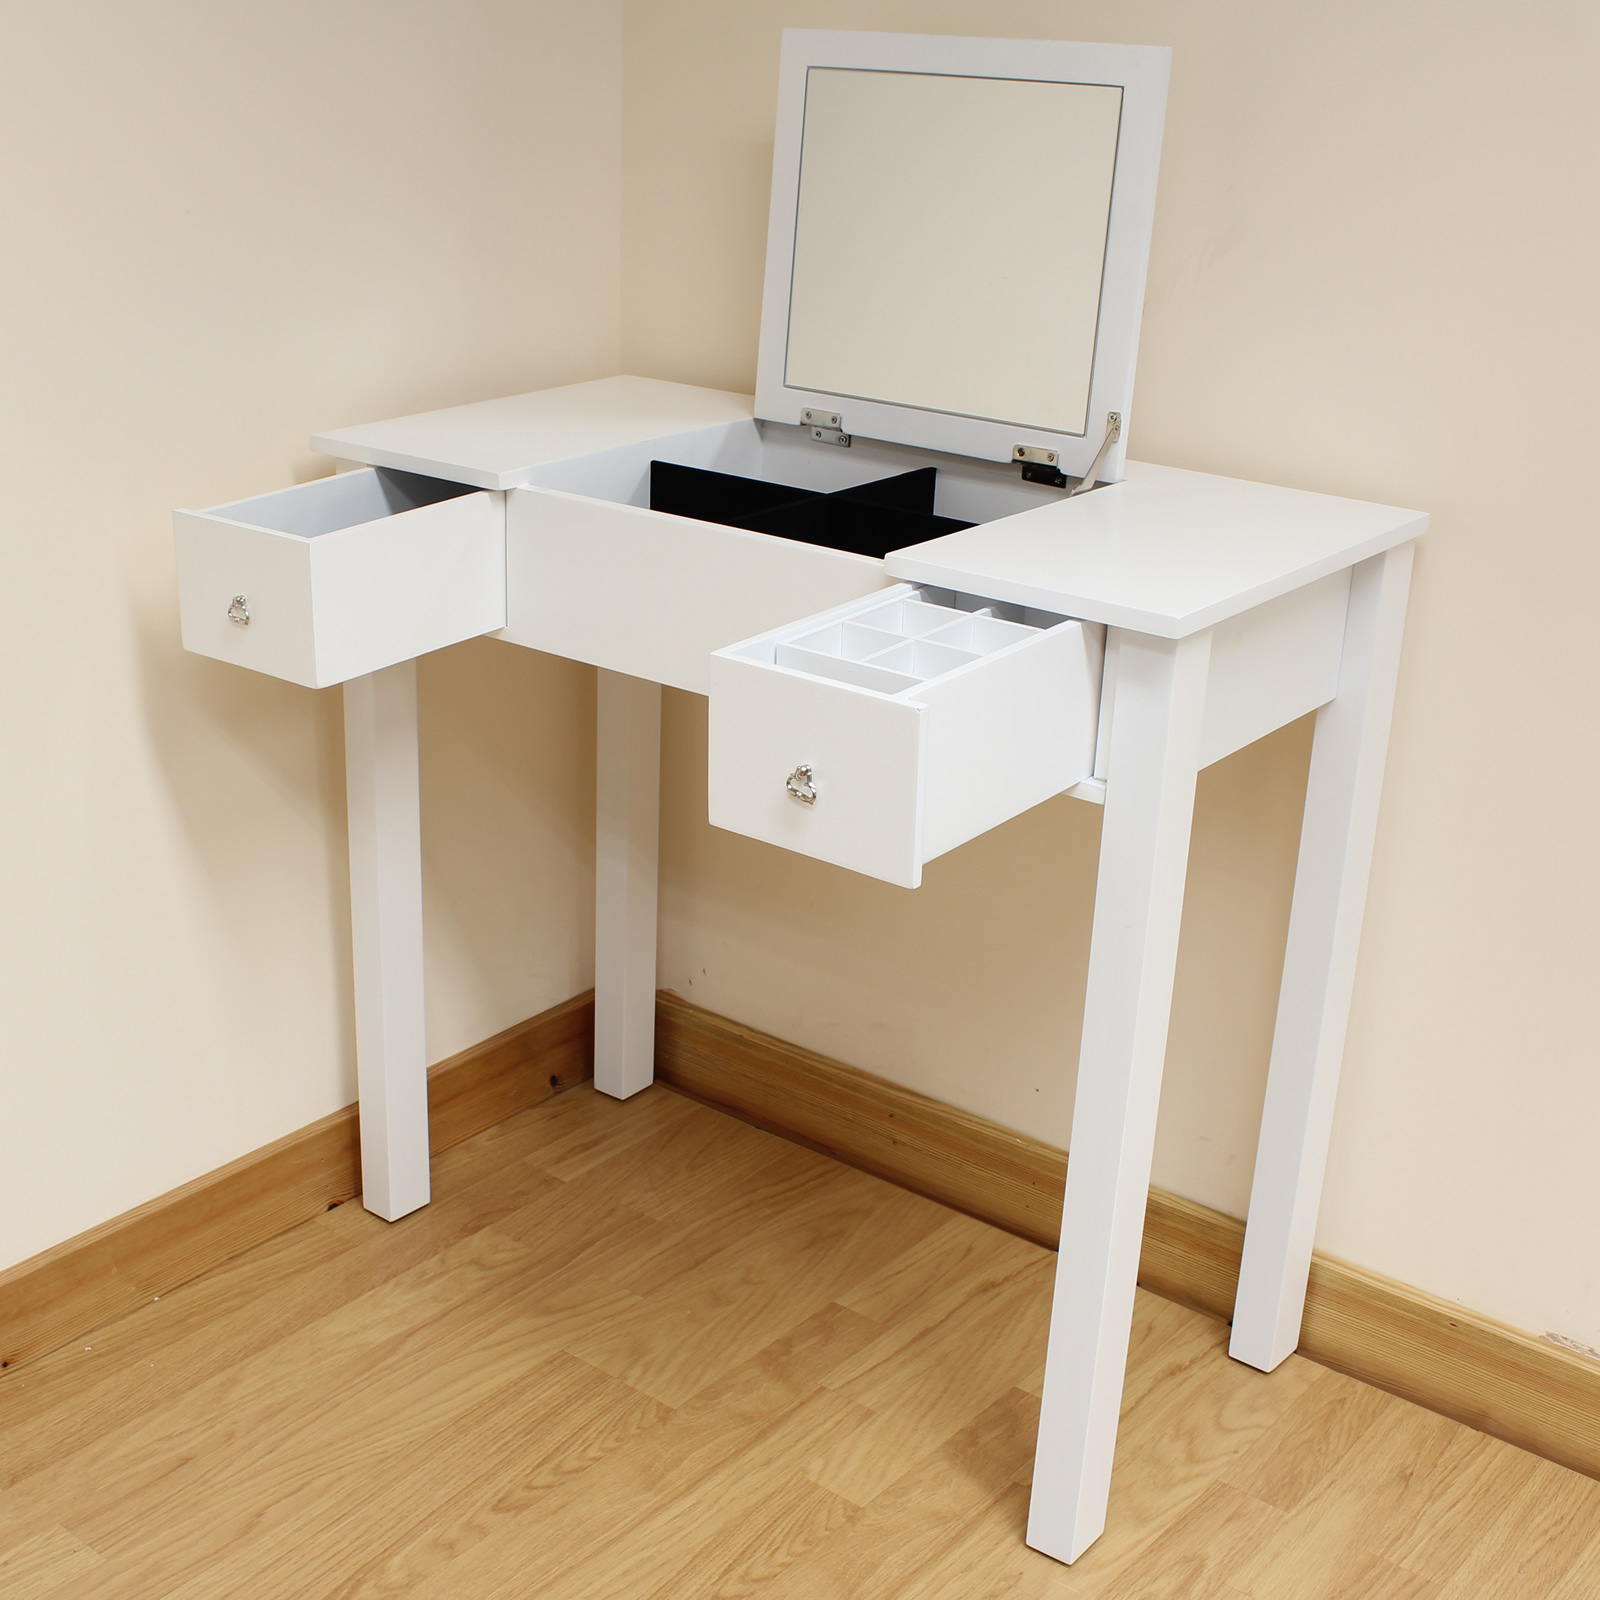 Bedroom Vanity Makeup Table White Dressing Room Bedroom Vanity Make Up Table Desk